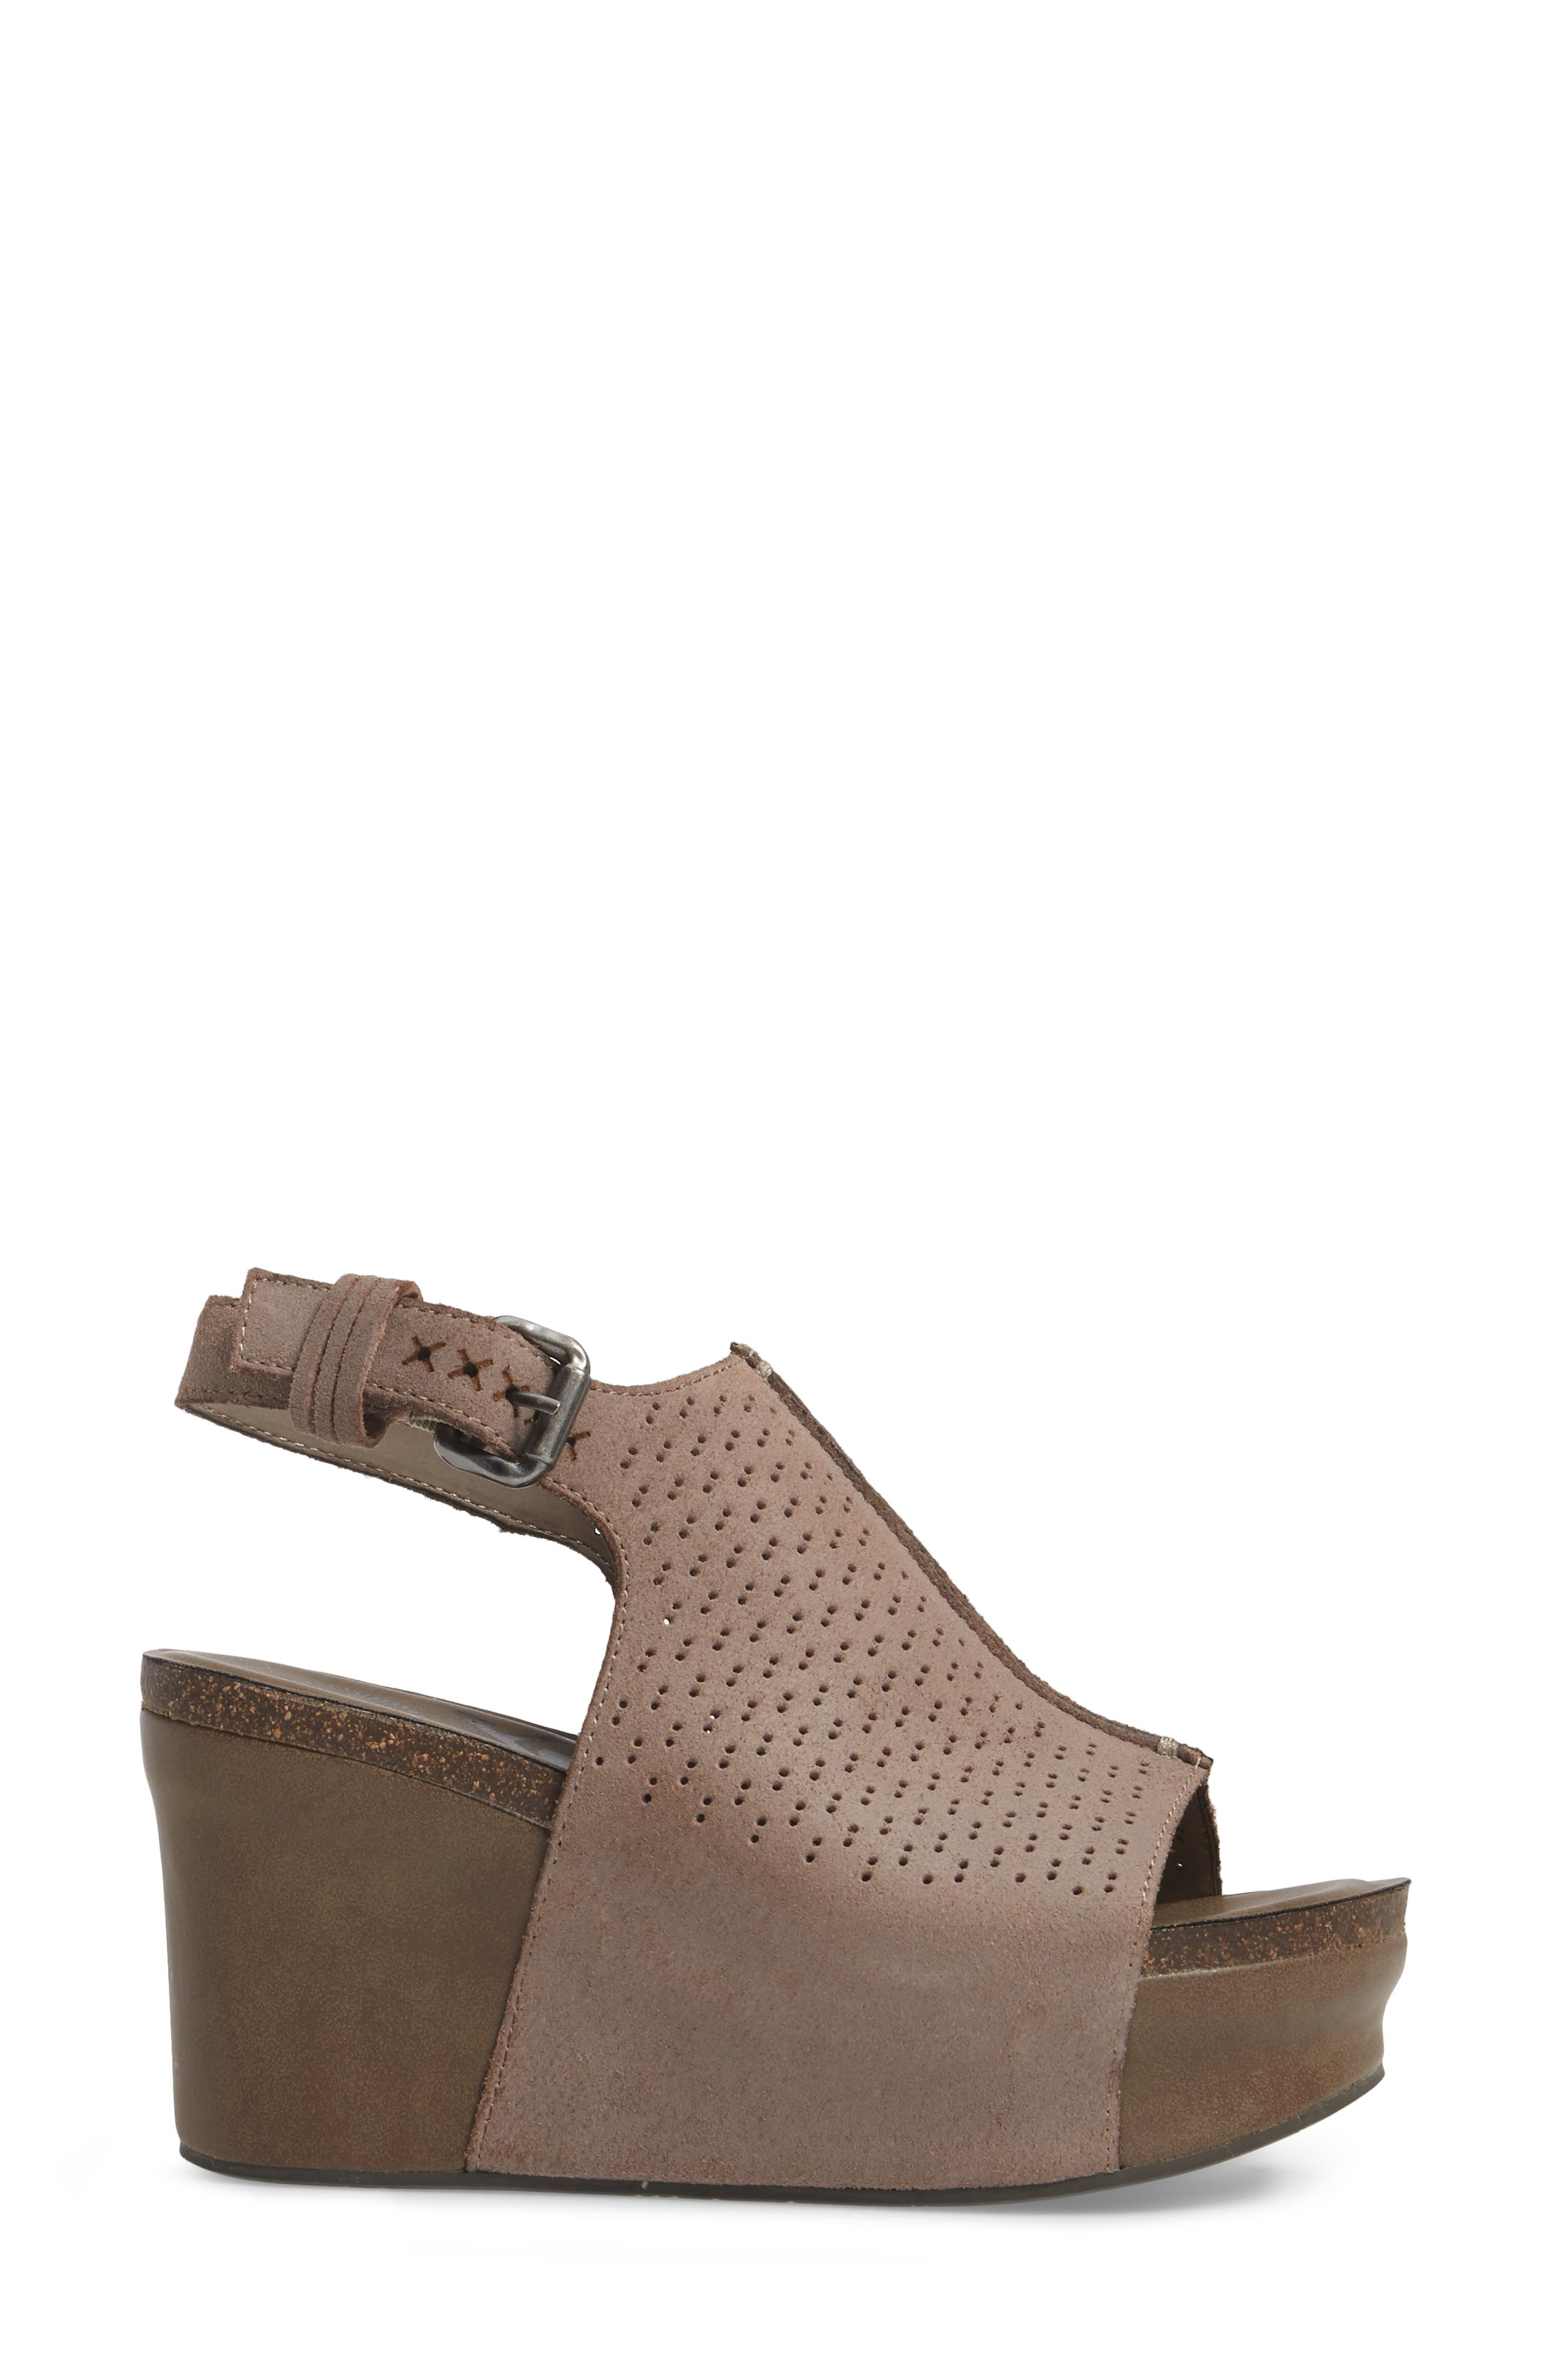 Alternate Image 3  - OTBT Jaunt Platform Wedge Sandal (Women)